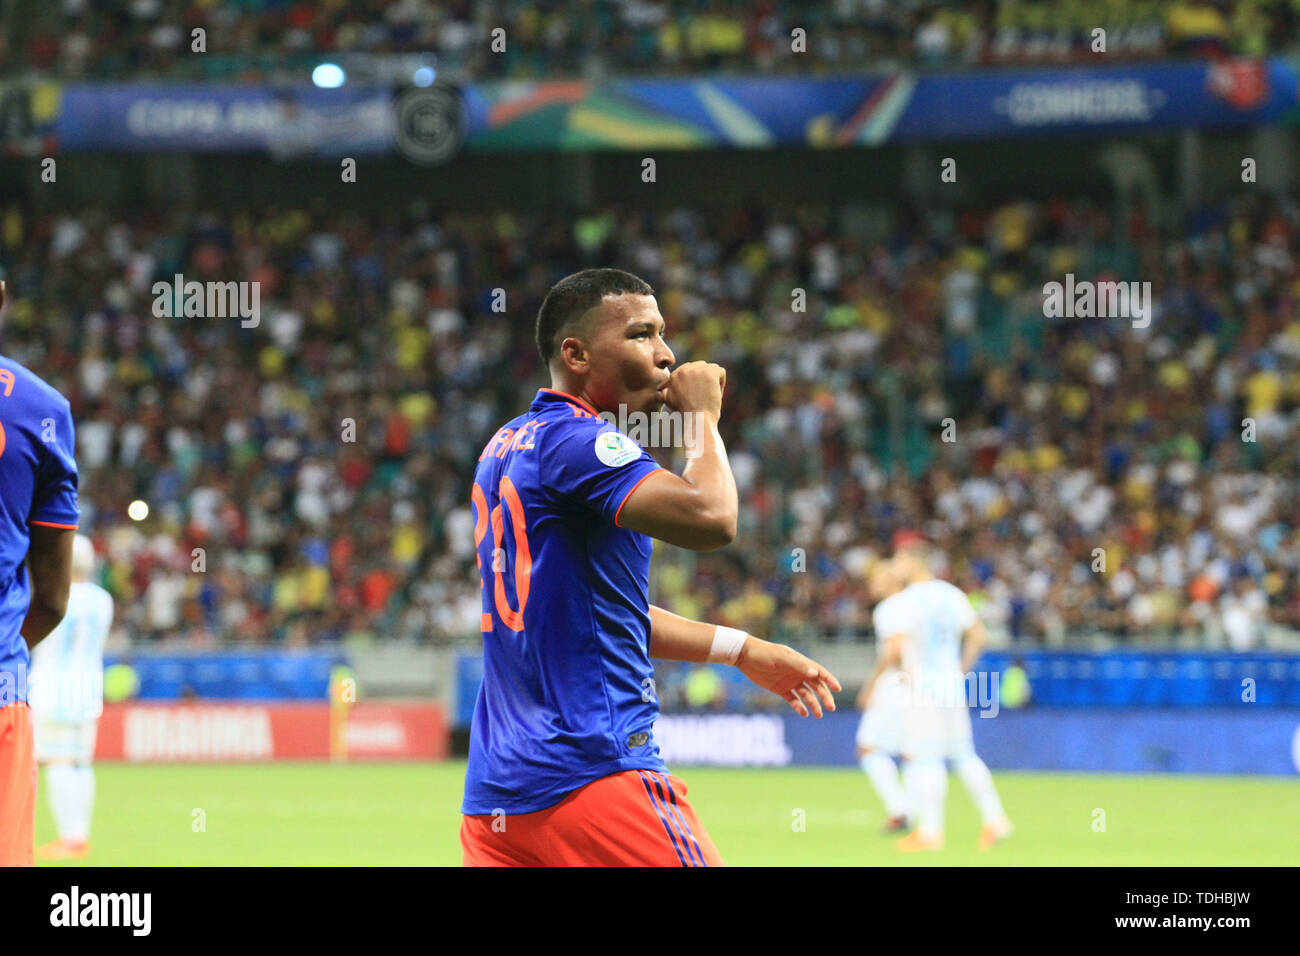 Salvador, Brazil. 15th June, 2019. Roger Martínez celebrates after scoring the first goal of the game, during a match between Argentina and Colombia, game 03, valid for the group stage of the Copa América 2019, held this Saturday, 15, at the Arena Fonte Nova in Salvador, BA. Credit: Mauro Akiin Nassor/FotoArena/Alamy Live News - Stock Image